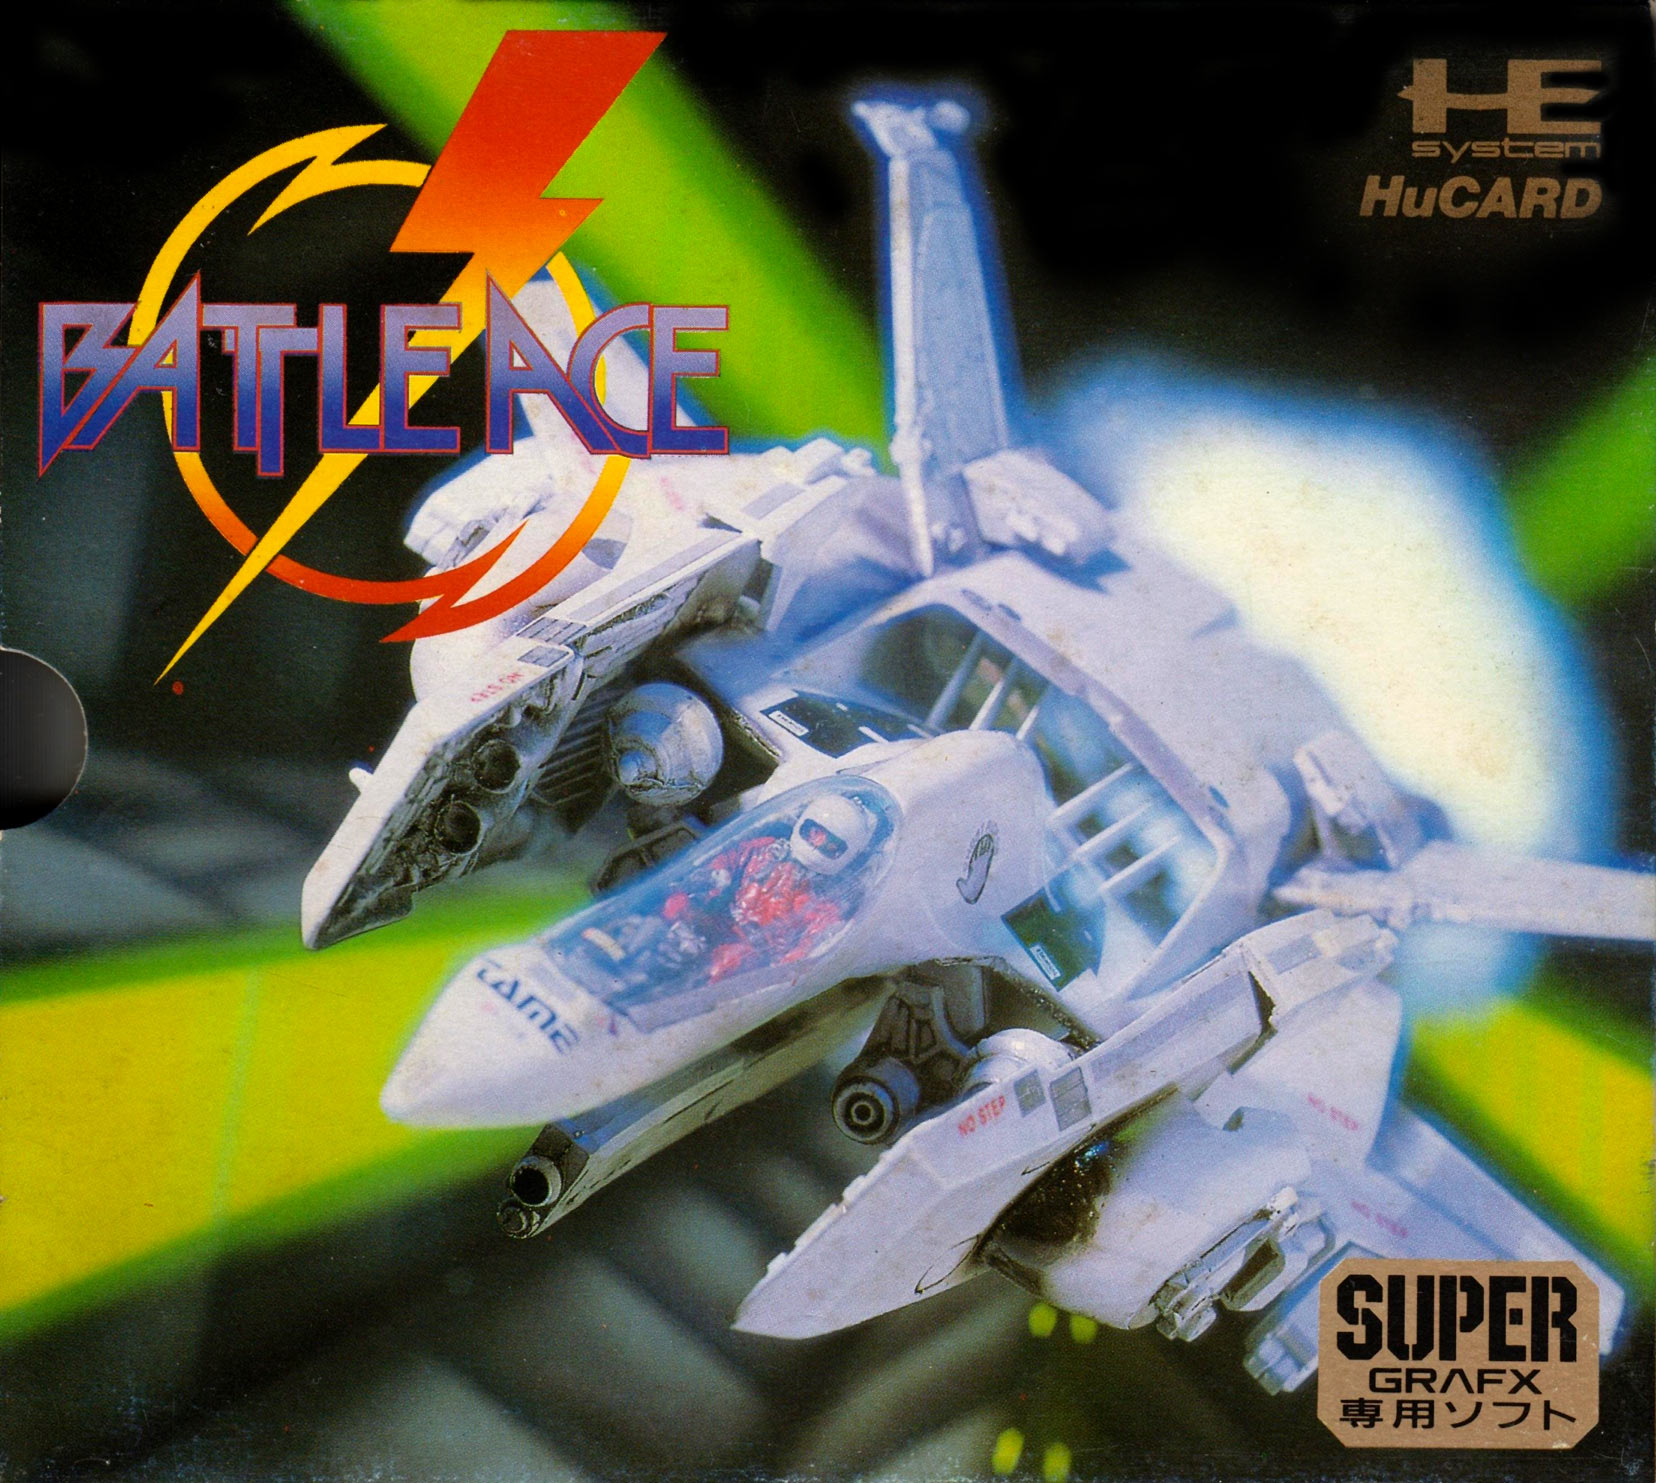 Battle Ace The Pc Engine Software Bible